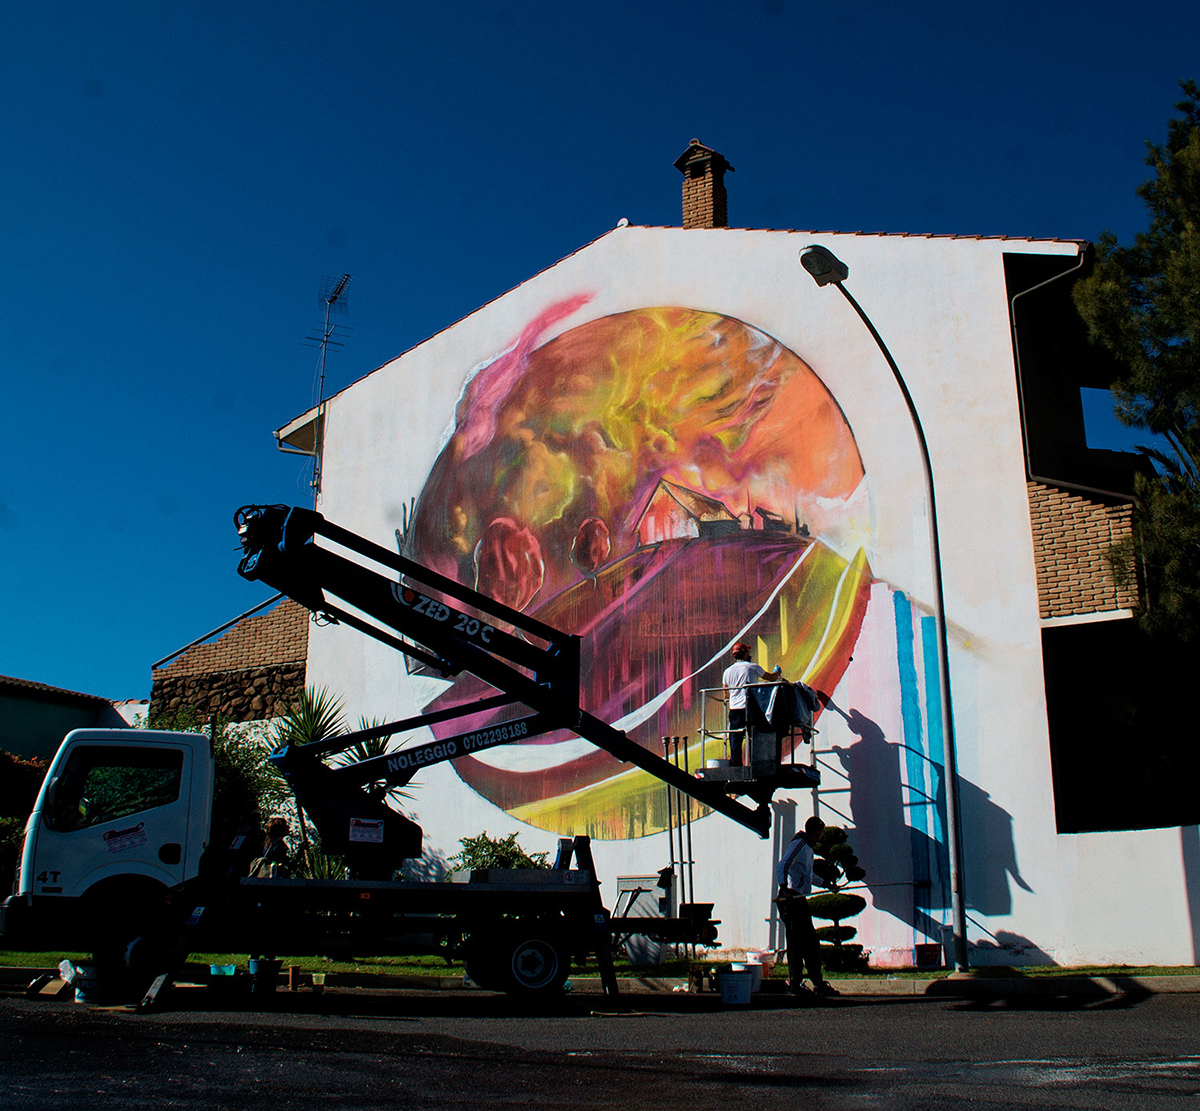 manu-invisible-frode-new-mural-in-san-sperate-14